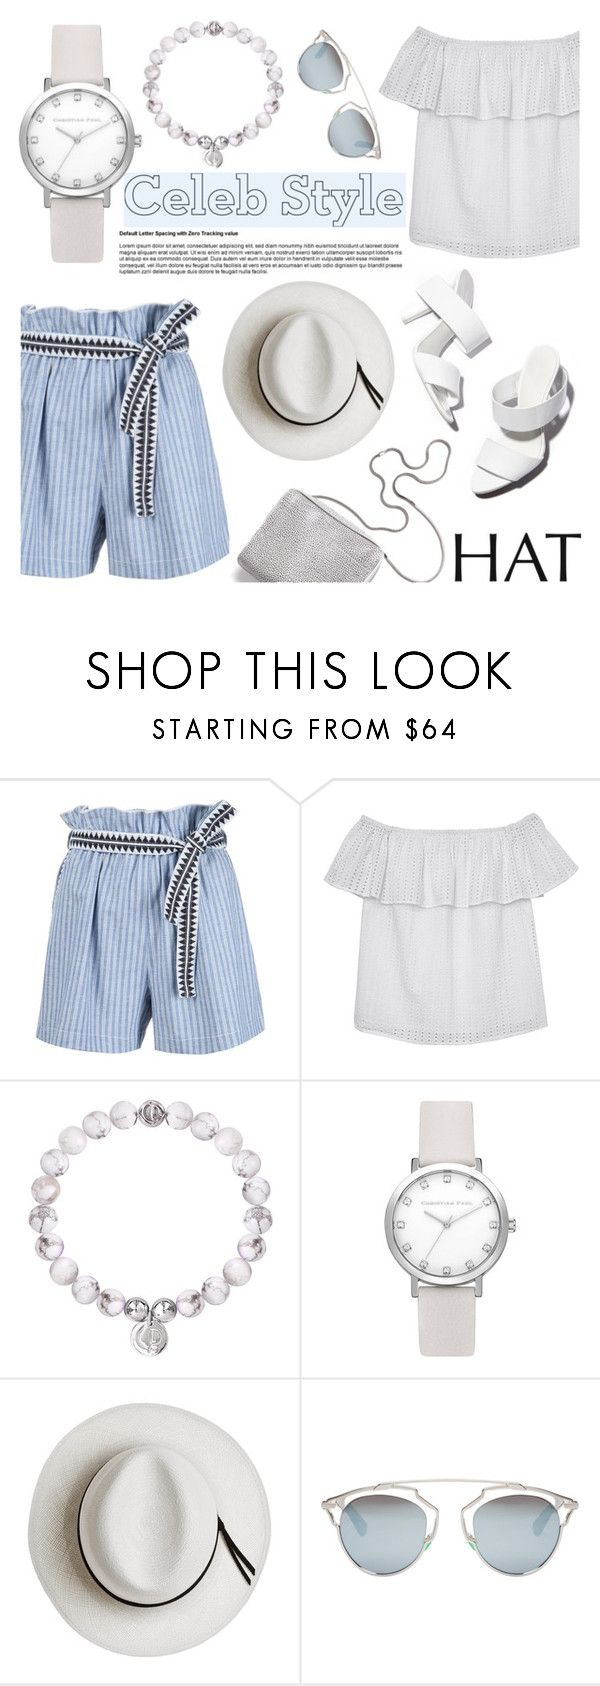 """""""Get the Look: Hat Edition"""" by christianpaul ❤ liked on Polyvore featuring Lemlem, Olive + Oak, Alexander Wang, 3.1 Phillip Lim, Calypso Private Label, Christian Dior, GetTheLook, hats, contestentry and christianpaulwatches"""